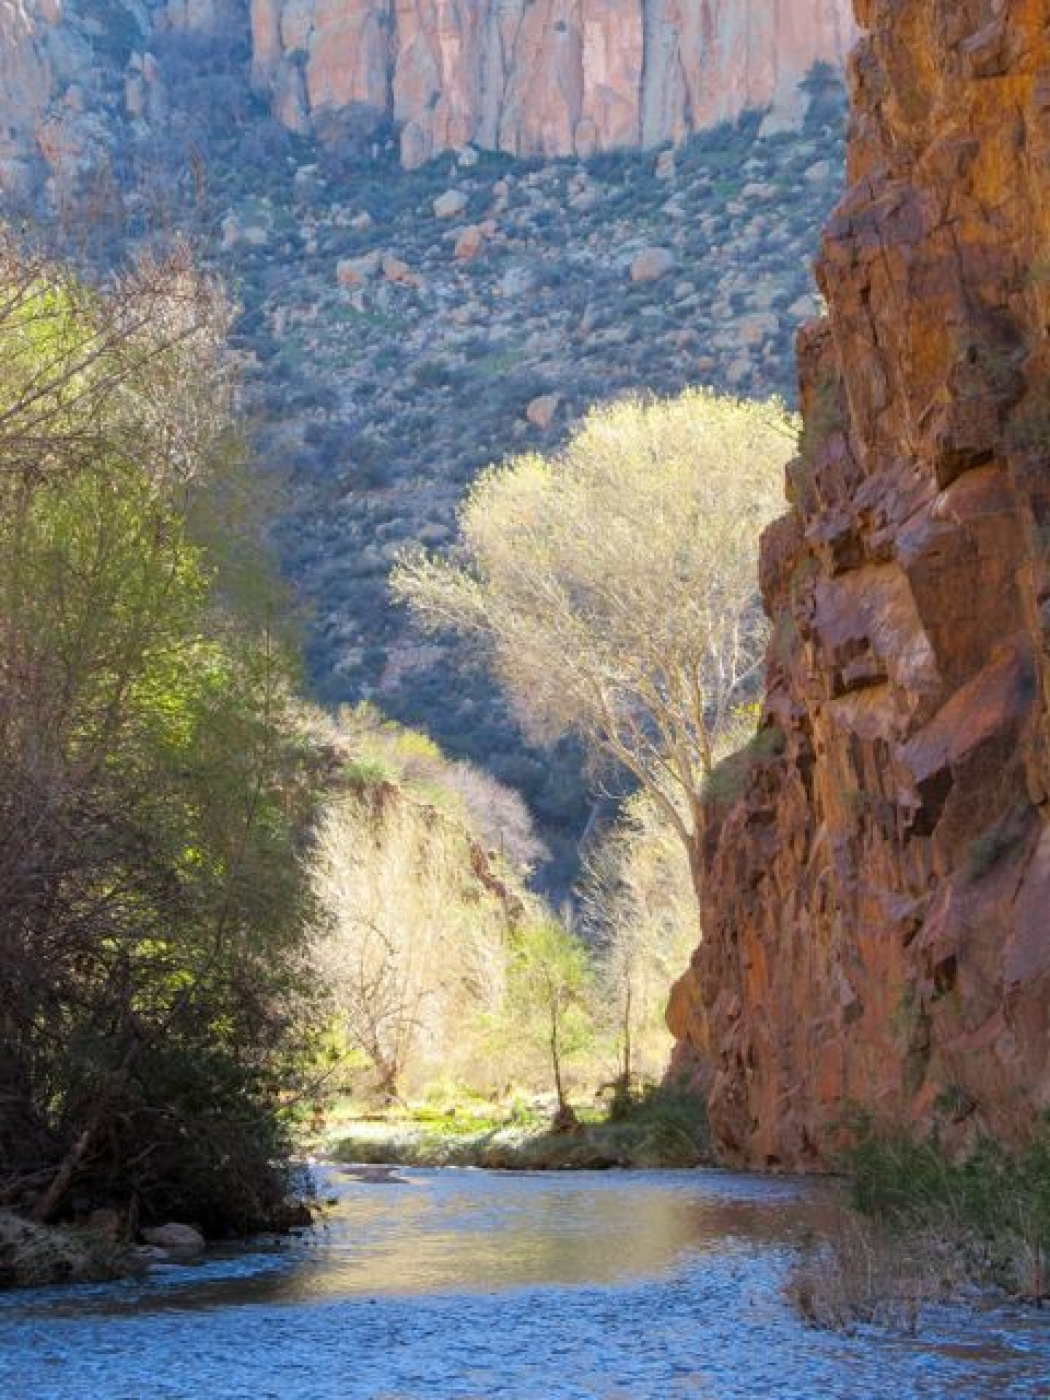 Arizona State Representatives >> Public Lands May Be America's Best Climate Defense | Climate Central